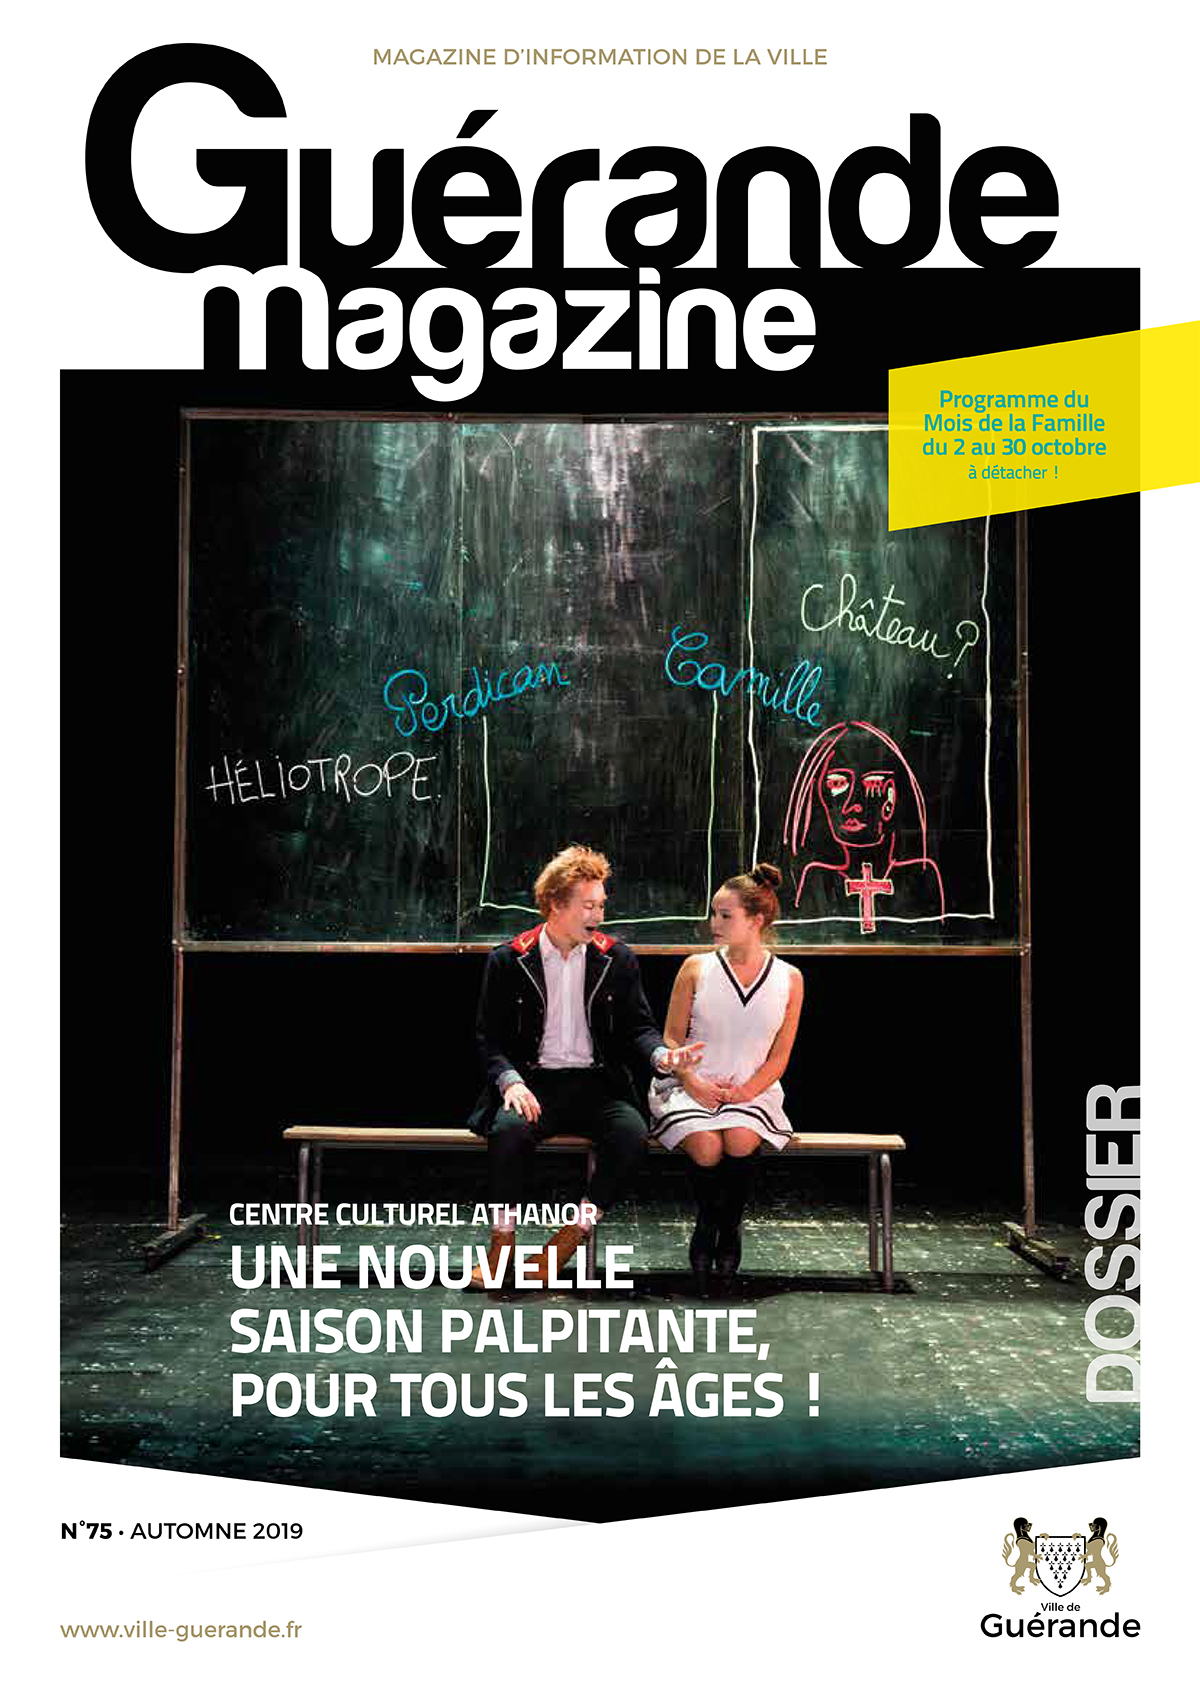 La culture du magazine Atlantic branchement